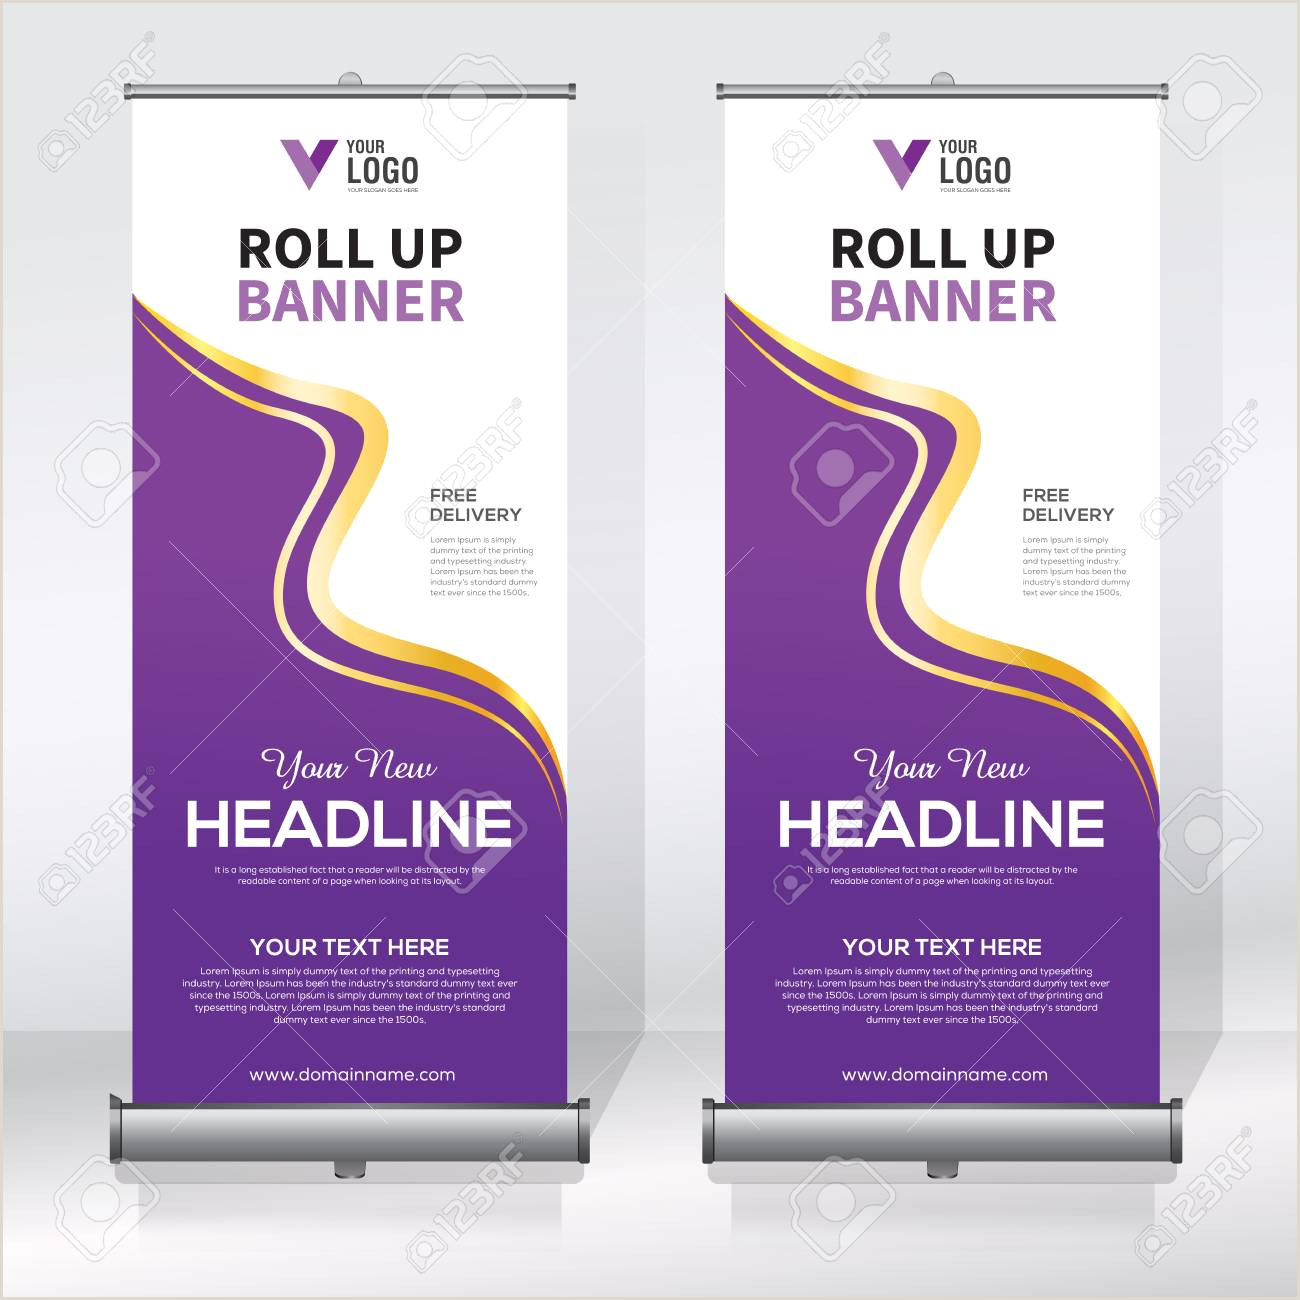 Pull Up Banners Dimensions Roll Up Banner Design Template Abstract Background Pull Up